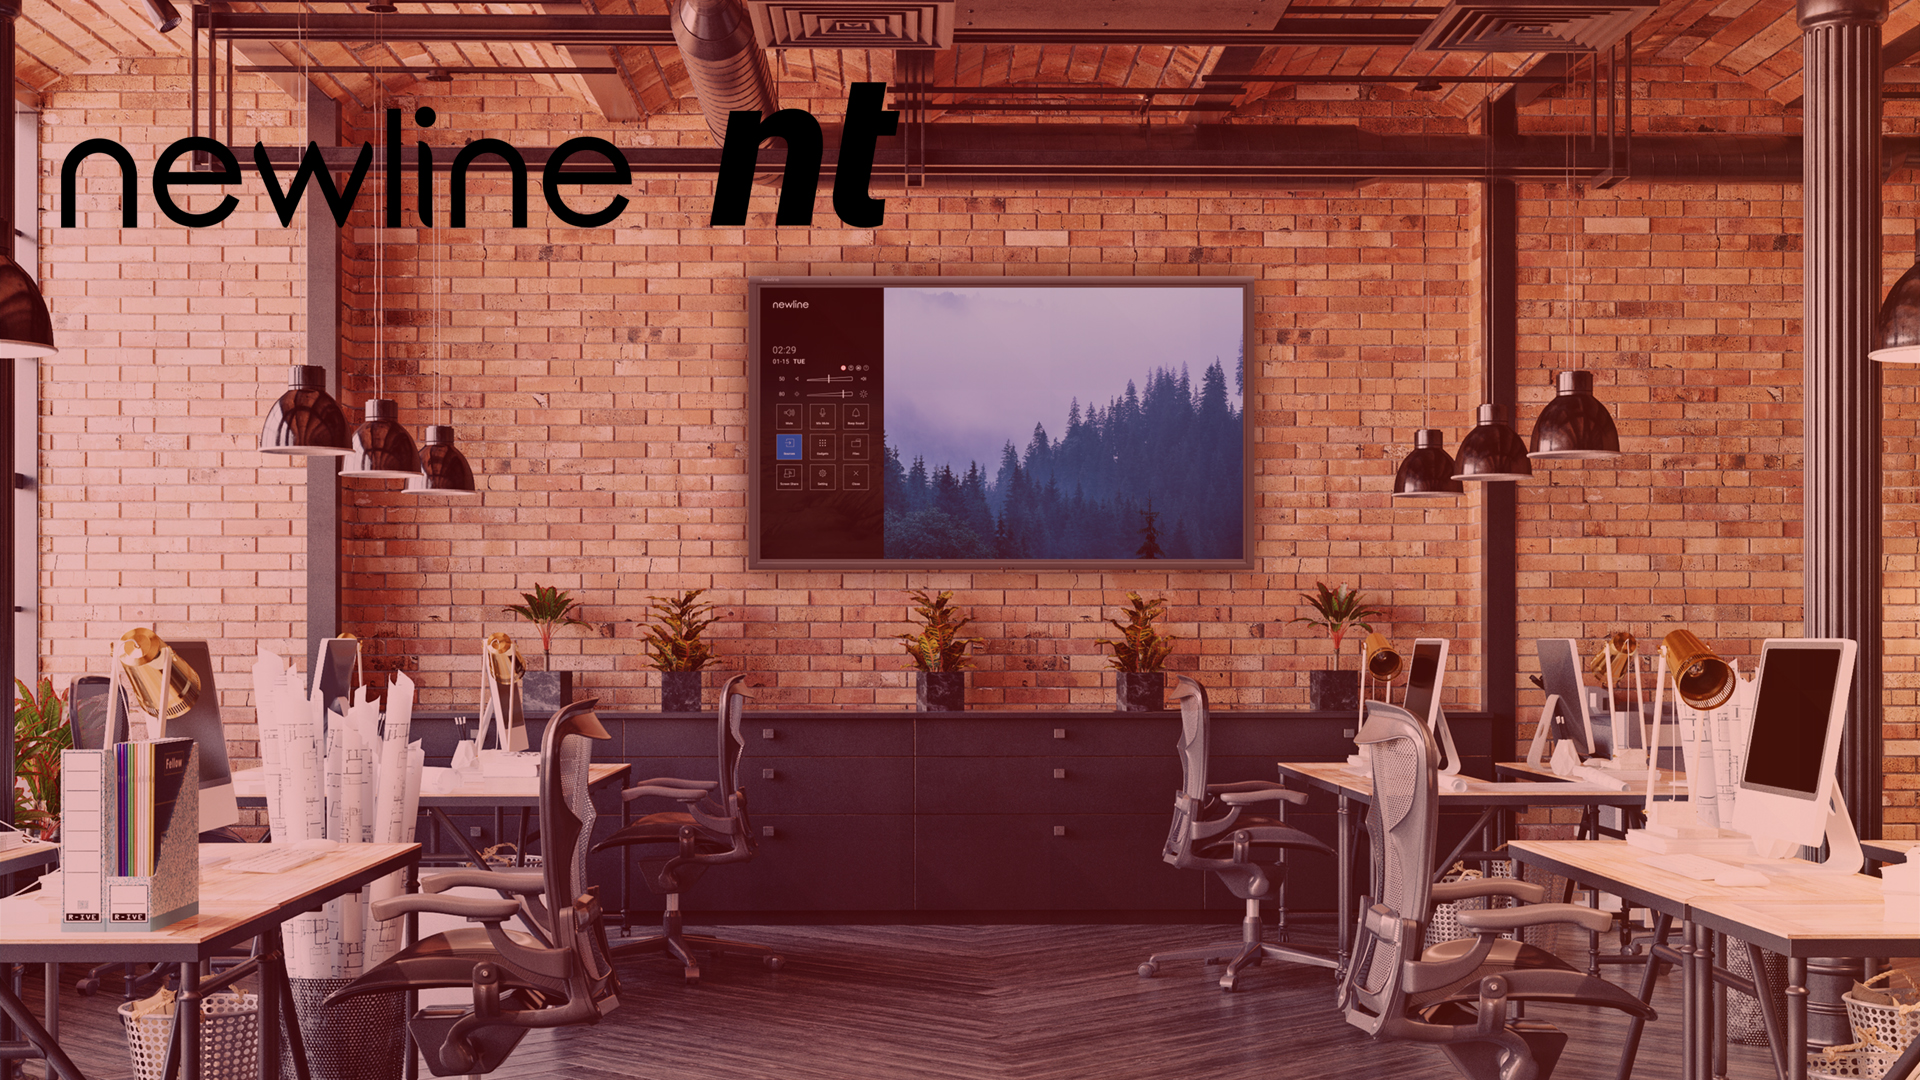 Newline Interactive NT Series